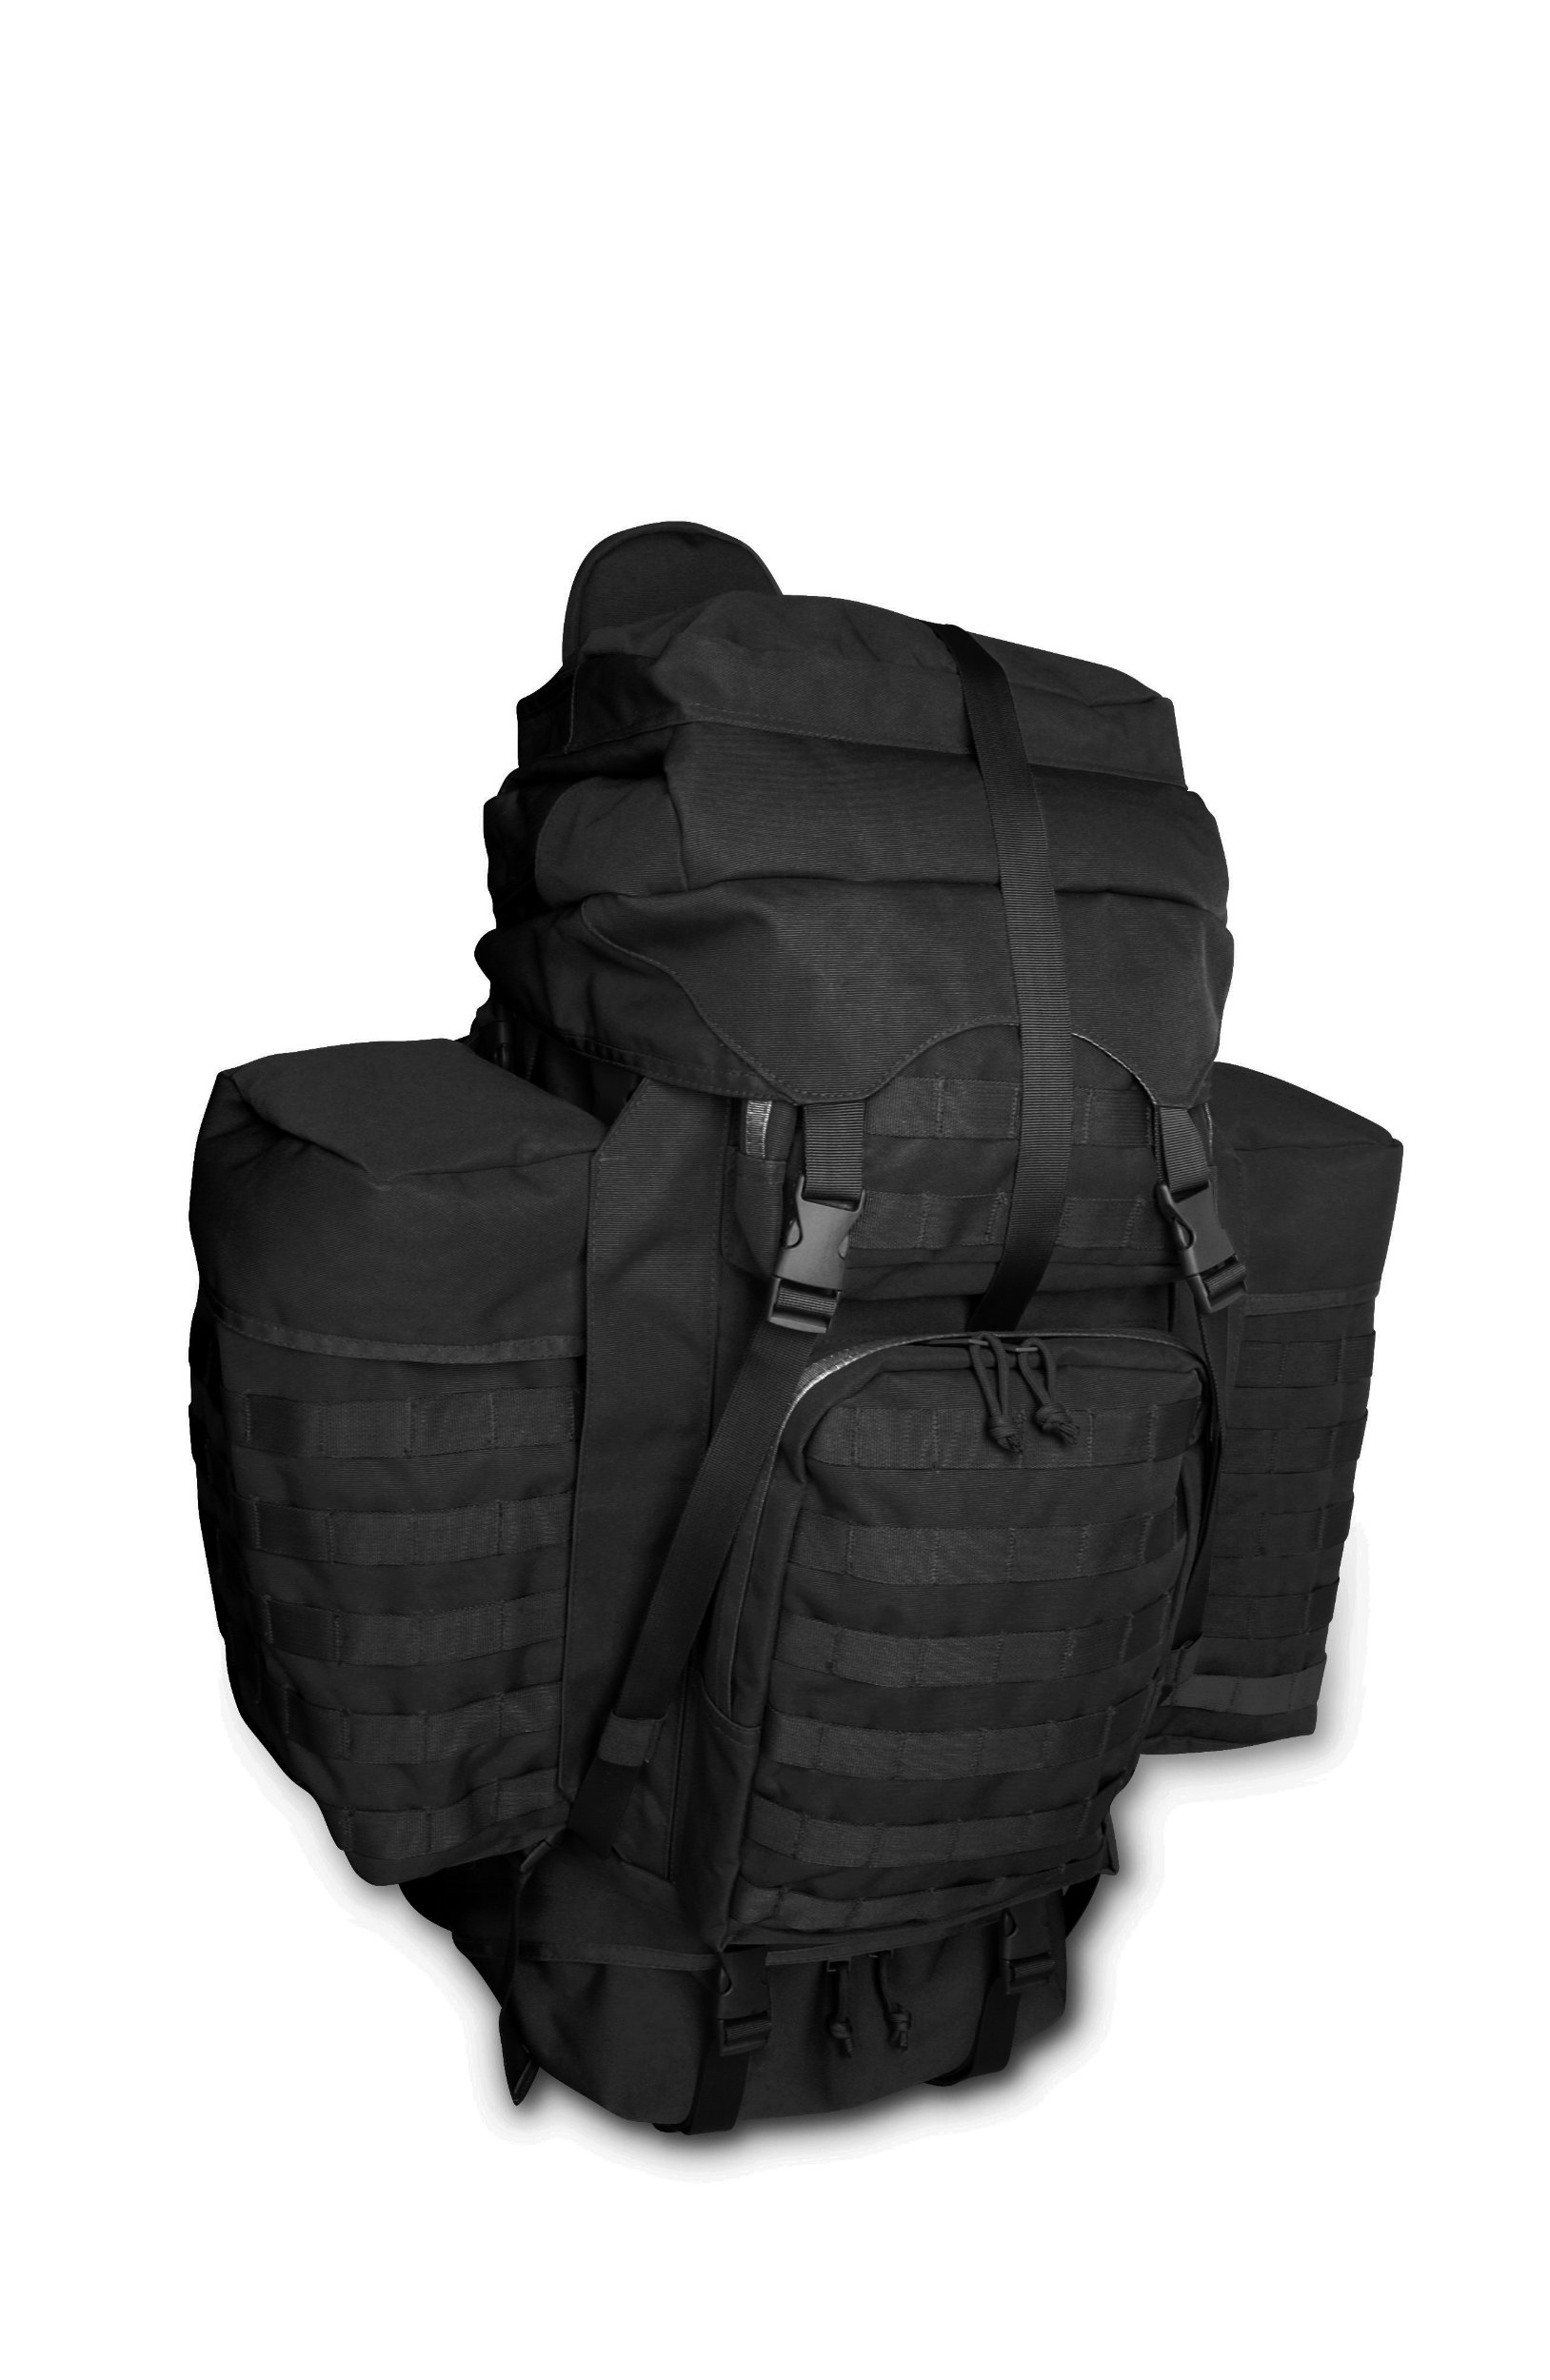 TAC Force Ruck Sack Back Pack, Black